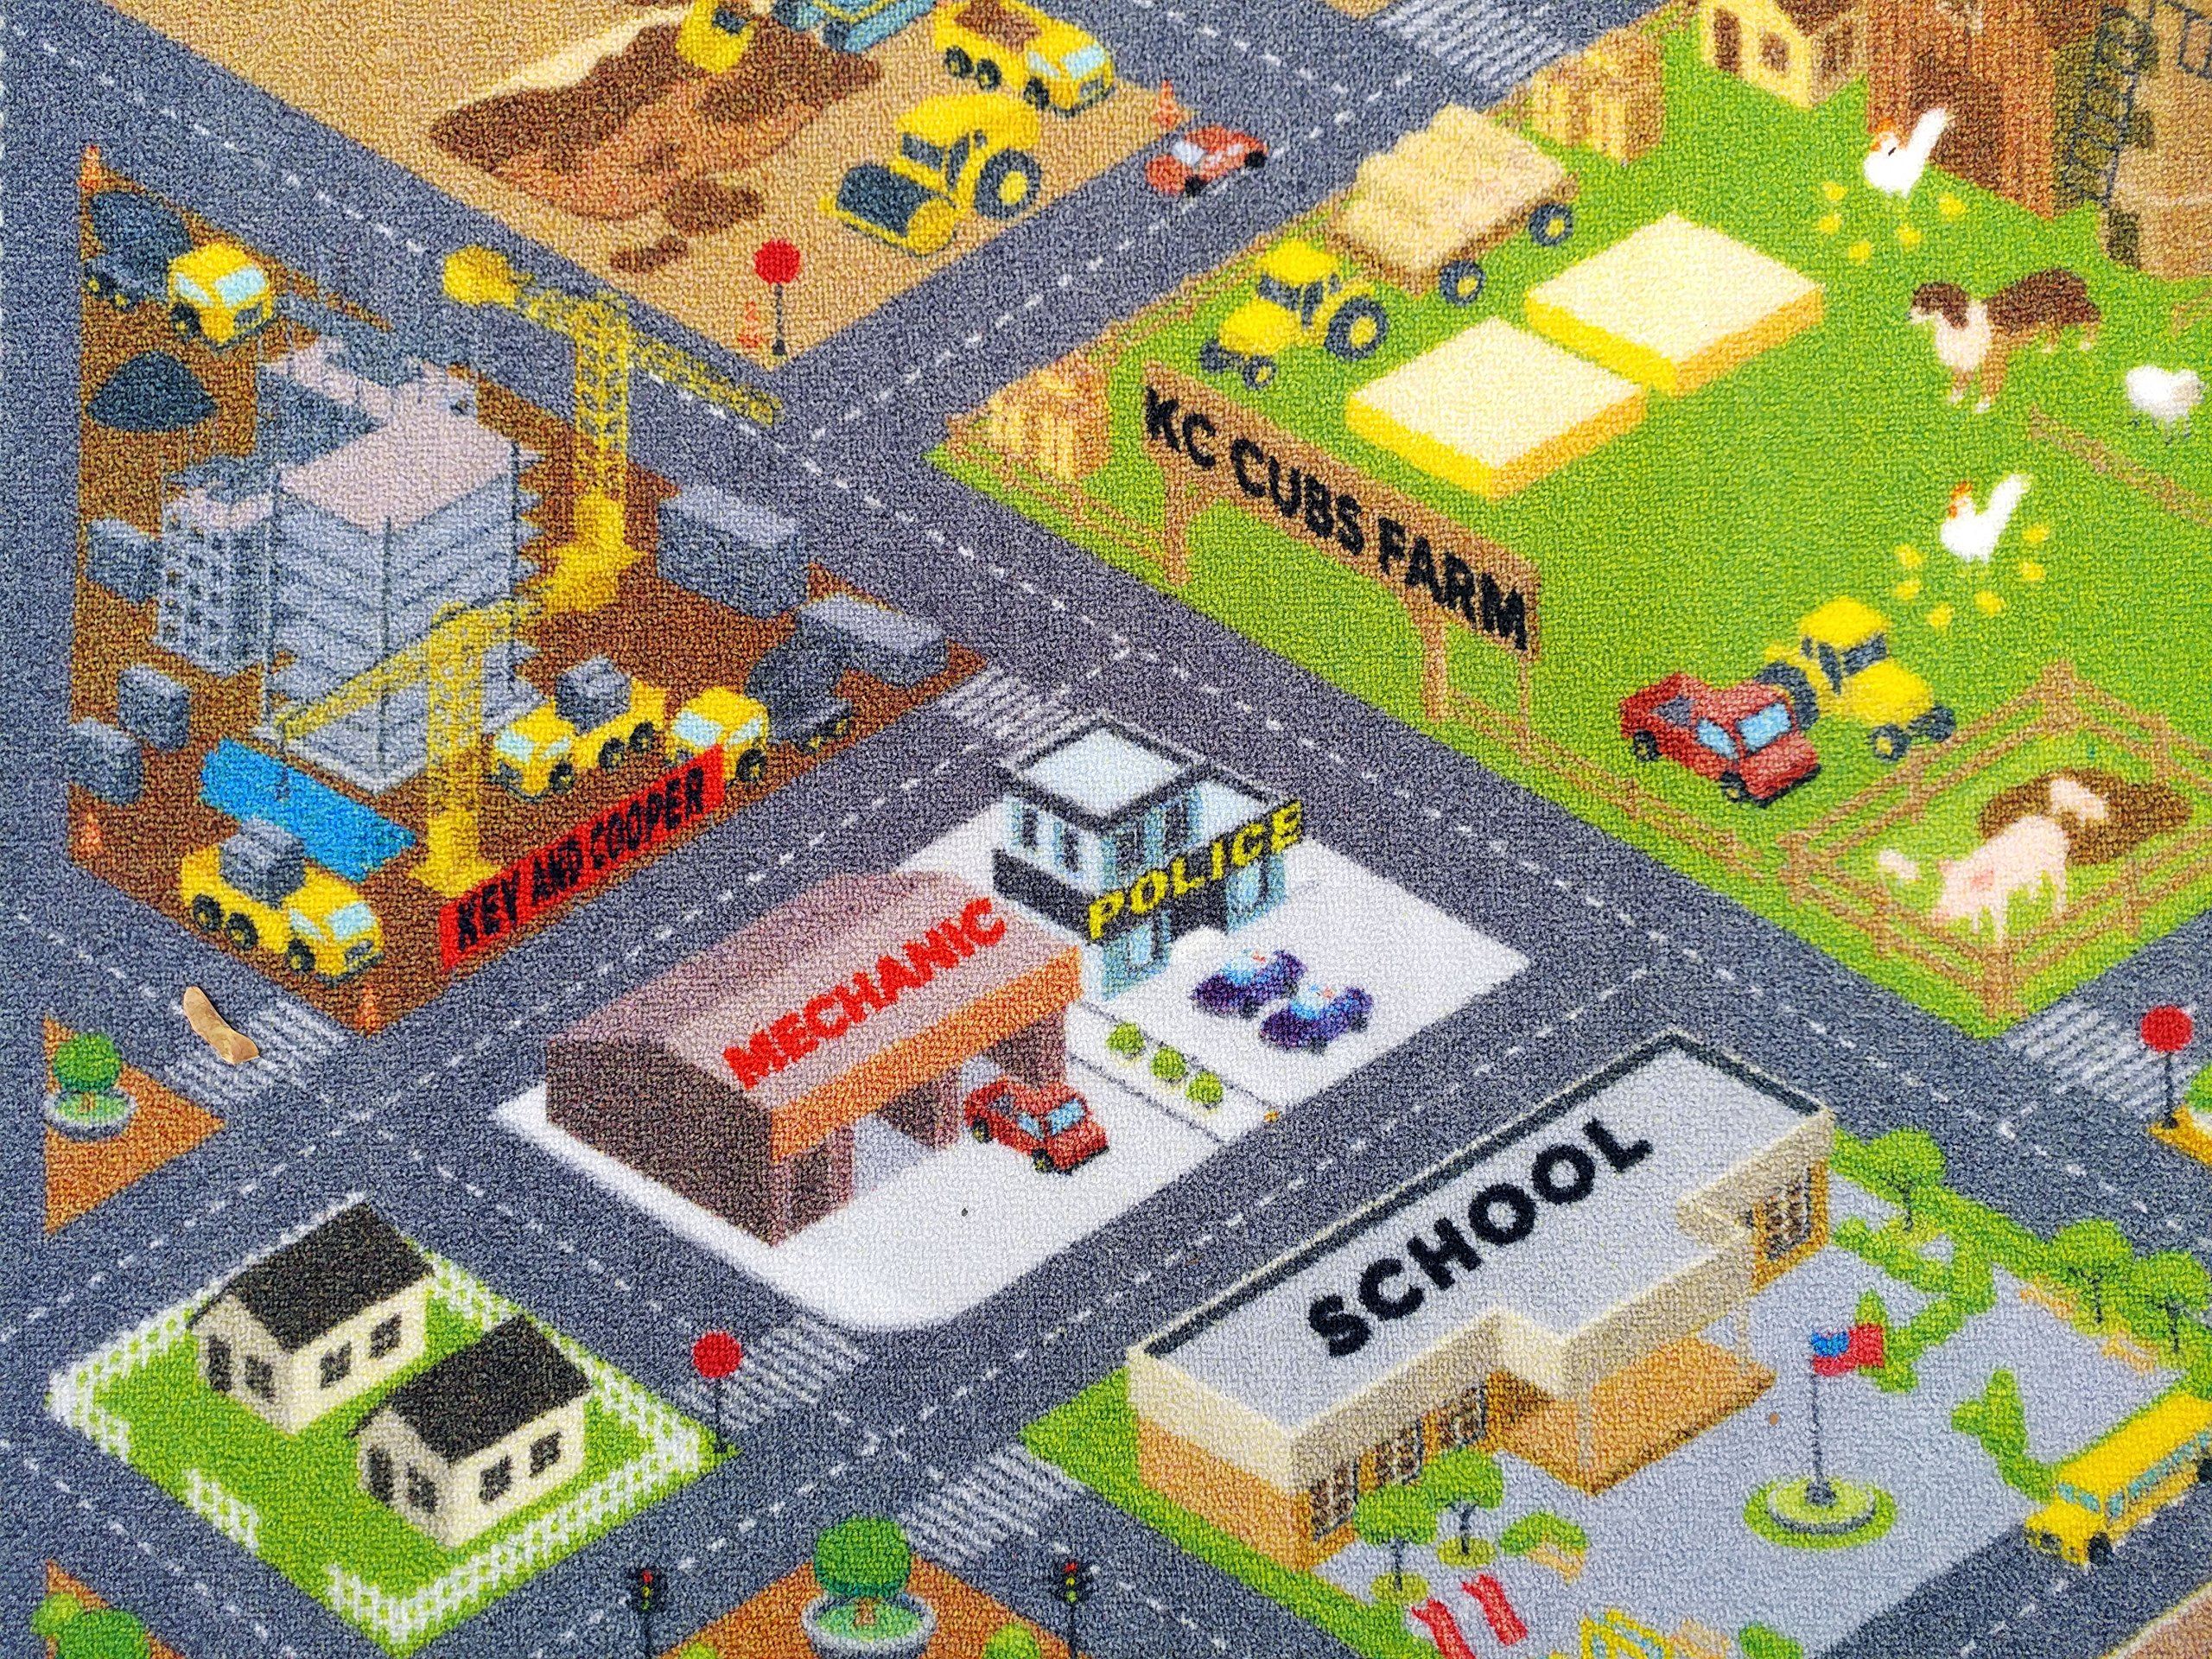 KC Cubs Playtime Collection Country Farm Road Map with Construction Site Educational Learning Area Rug Carpet for Kids and Children Bedroom and Playroom (3' 3'' x 4' 7'') by Kev & Cooper (Image #2)